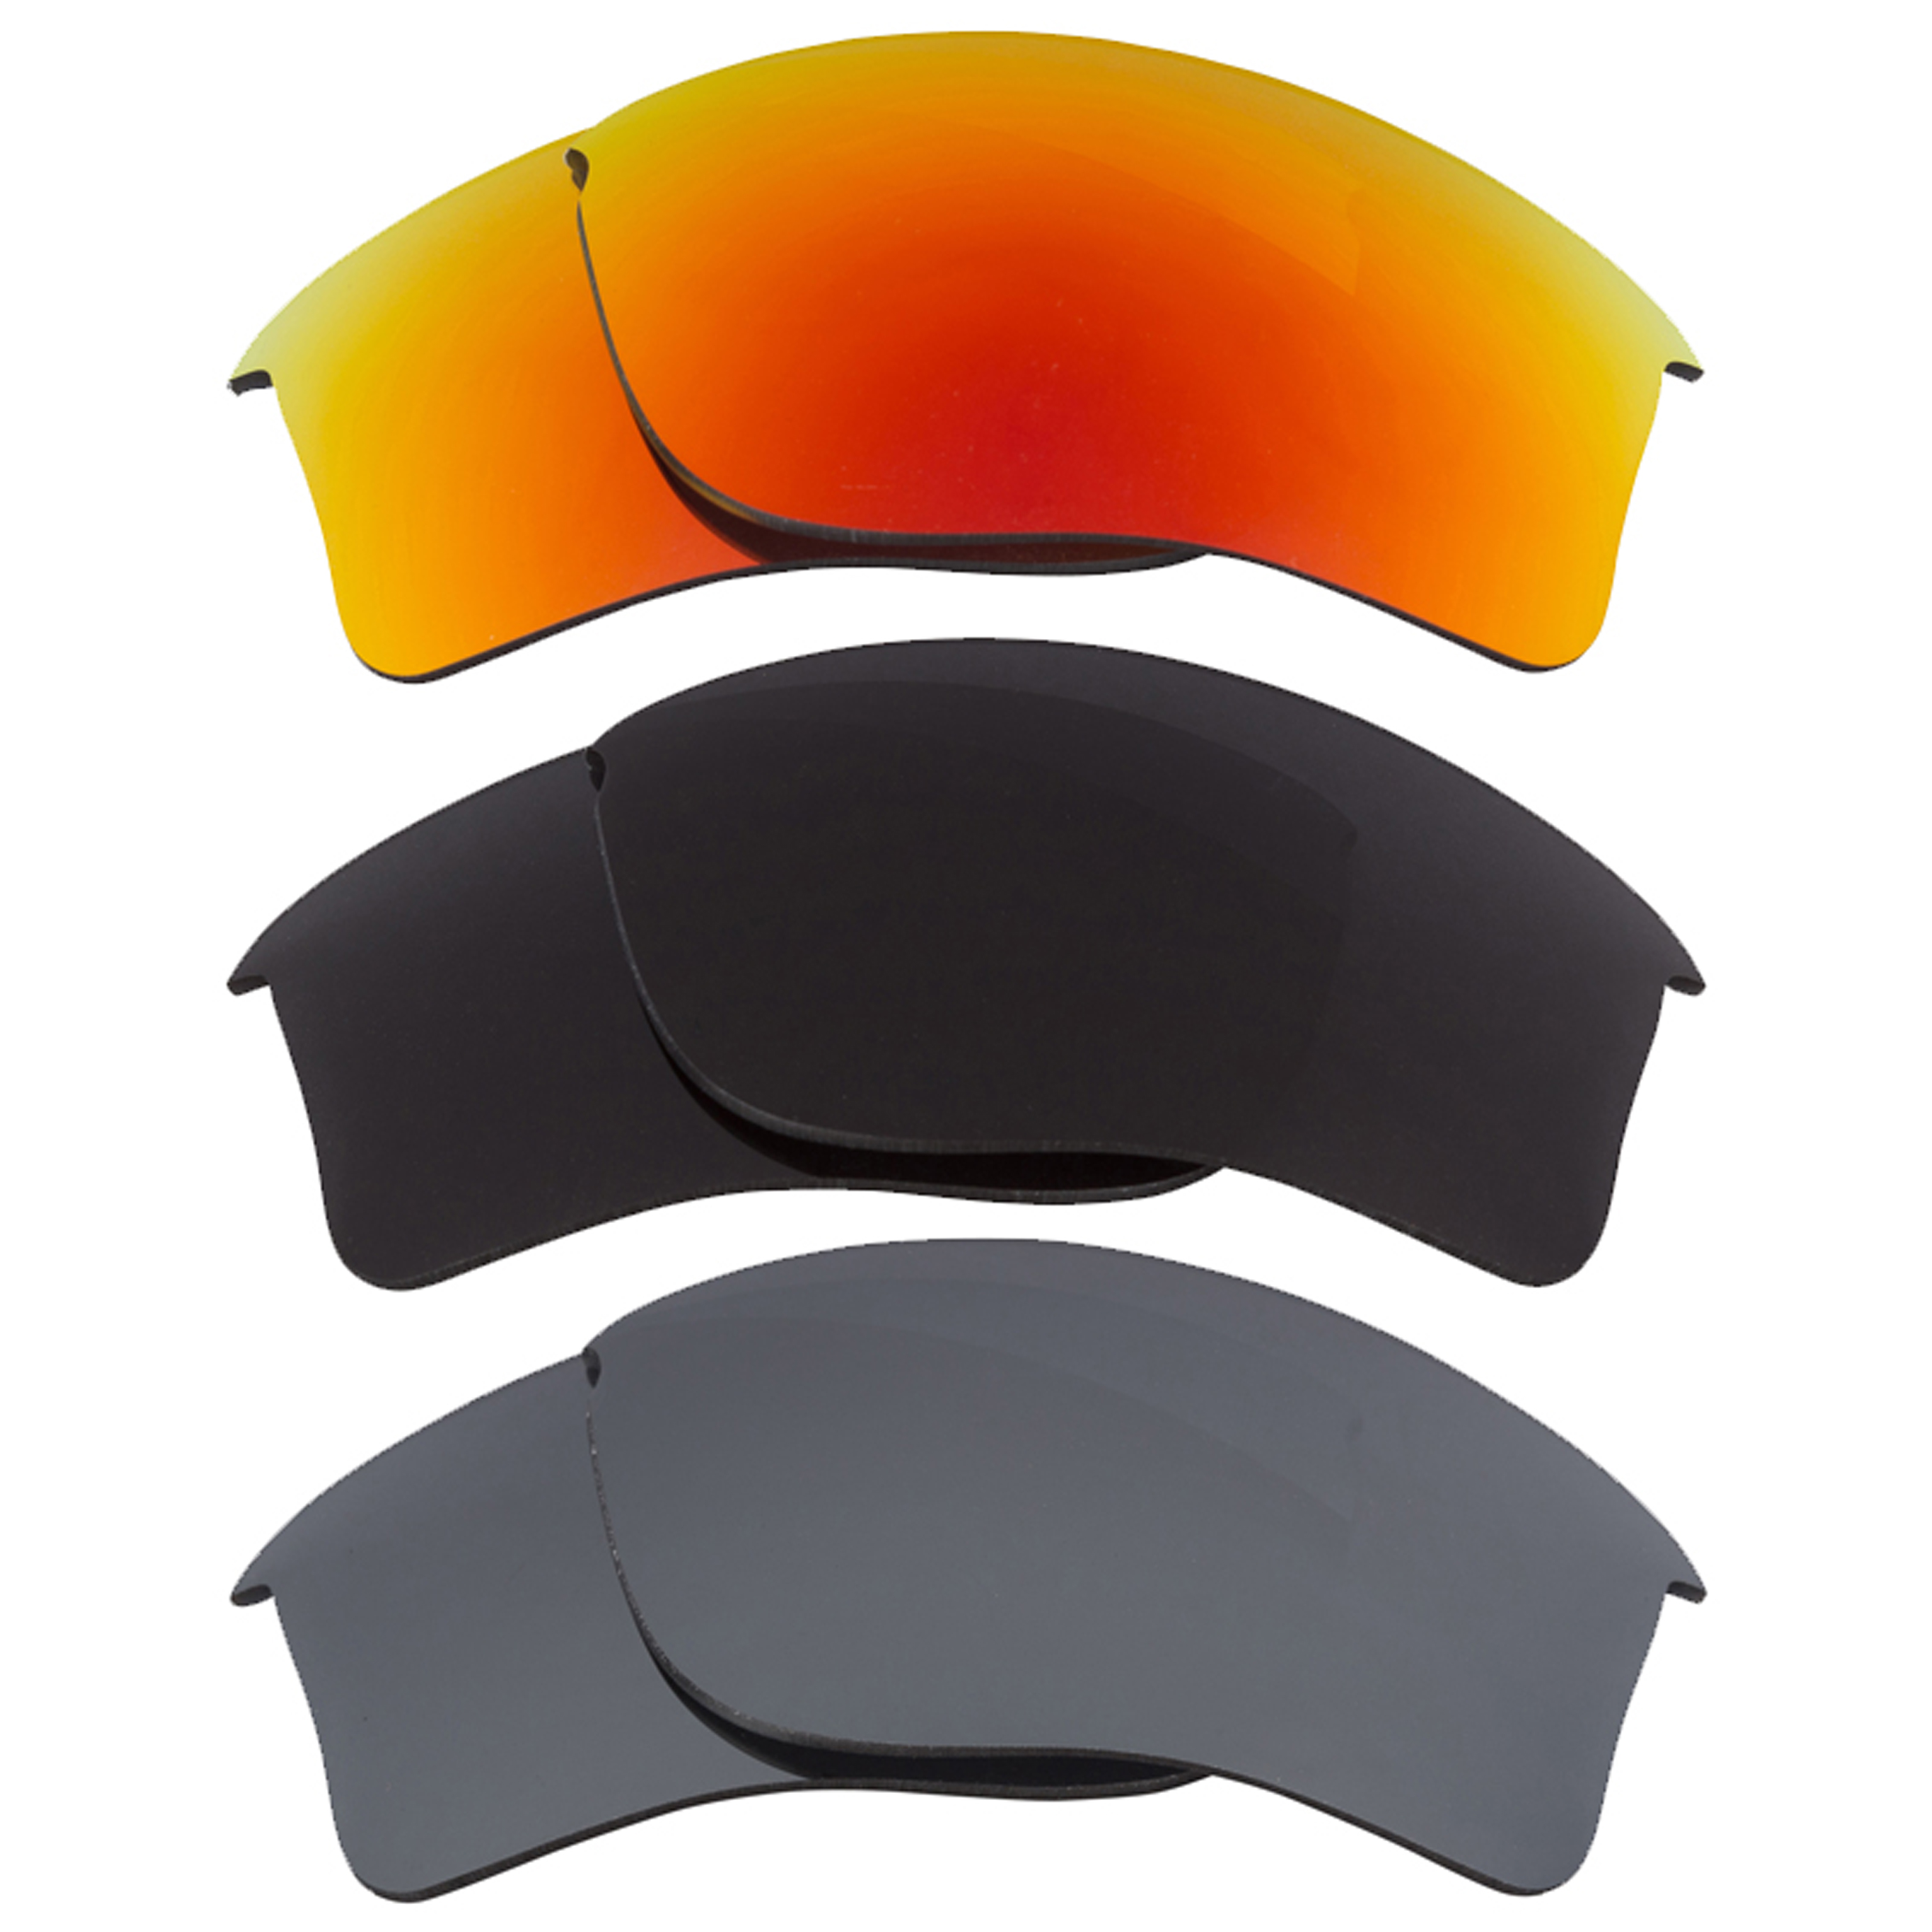 59dca2050e Details about Flak Jacket XLJ Replacement Lenses Grey Black Iridium   Red  by SEEK fits OAKLEY